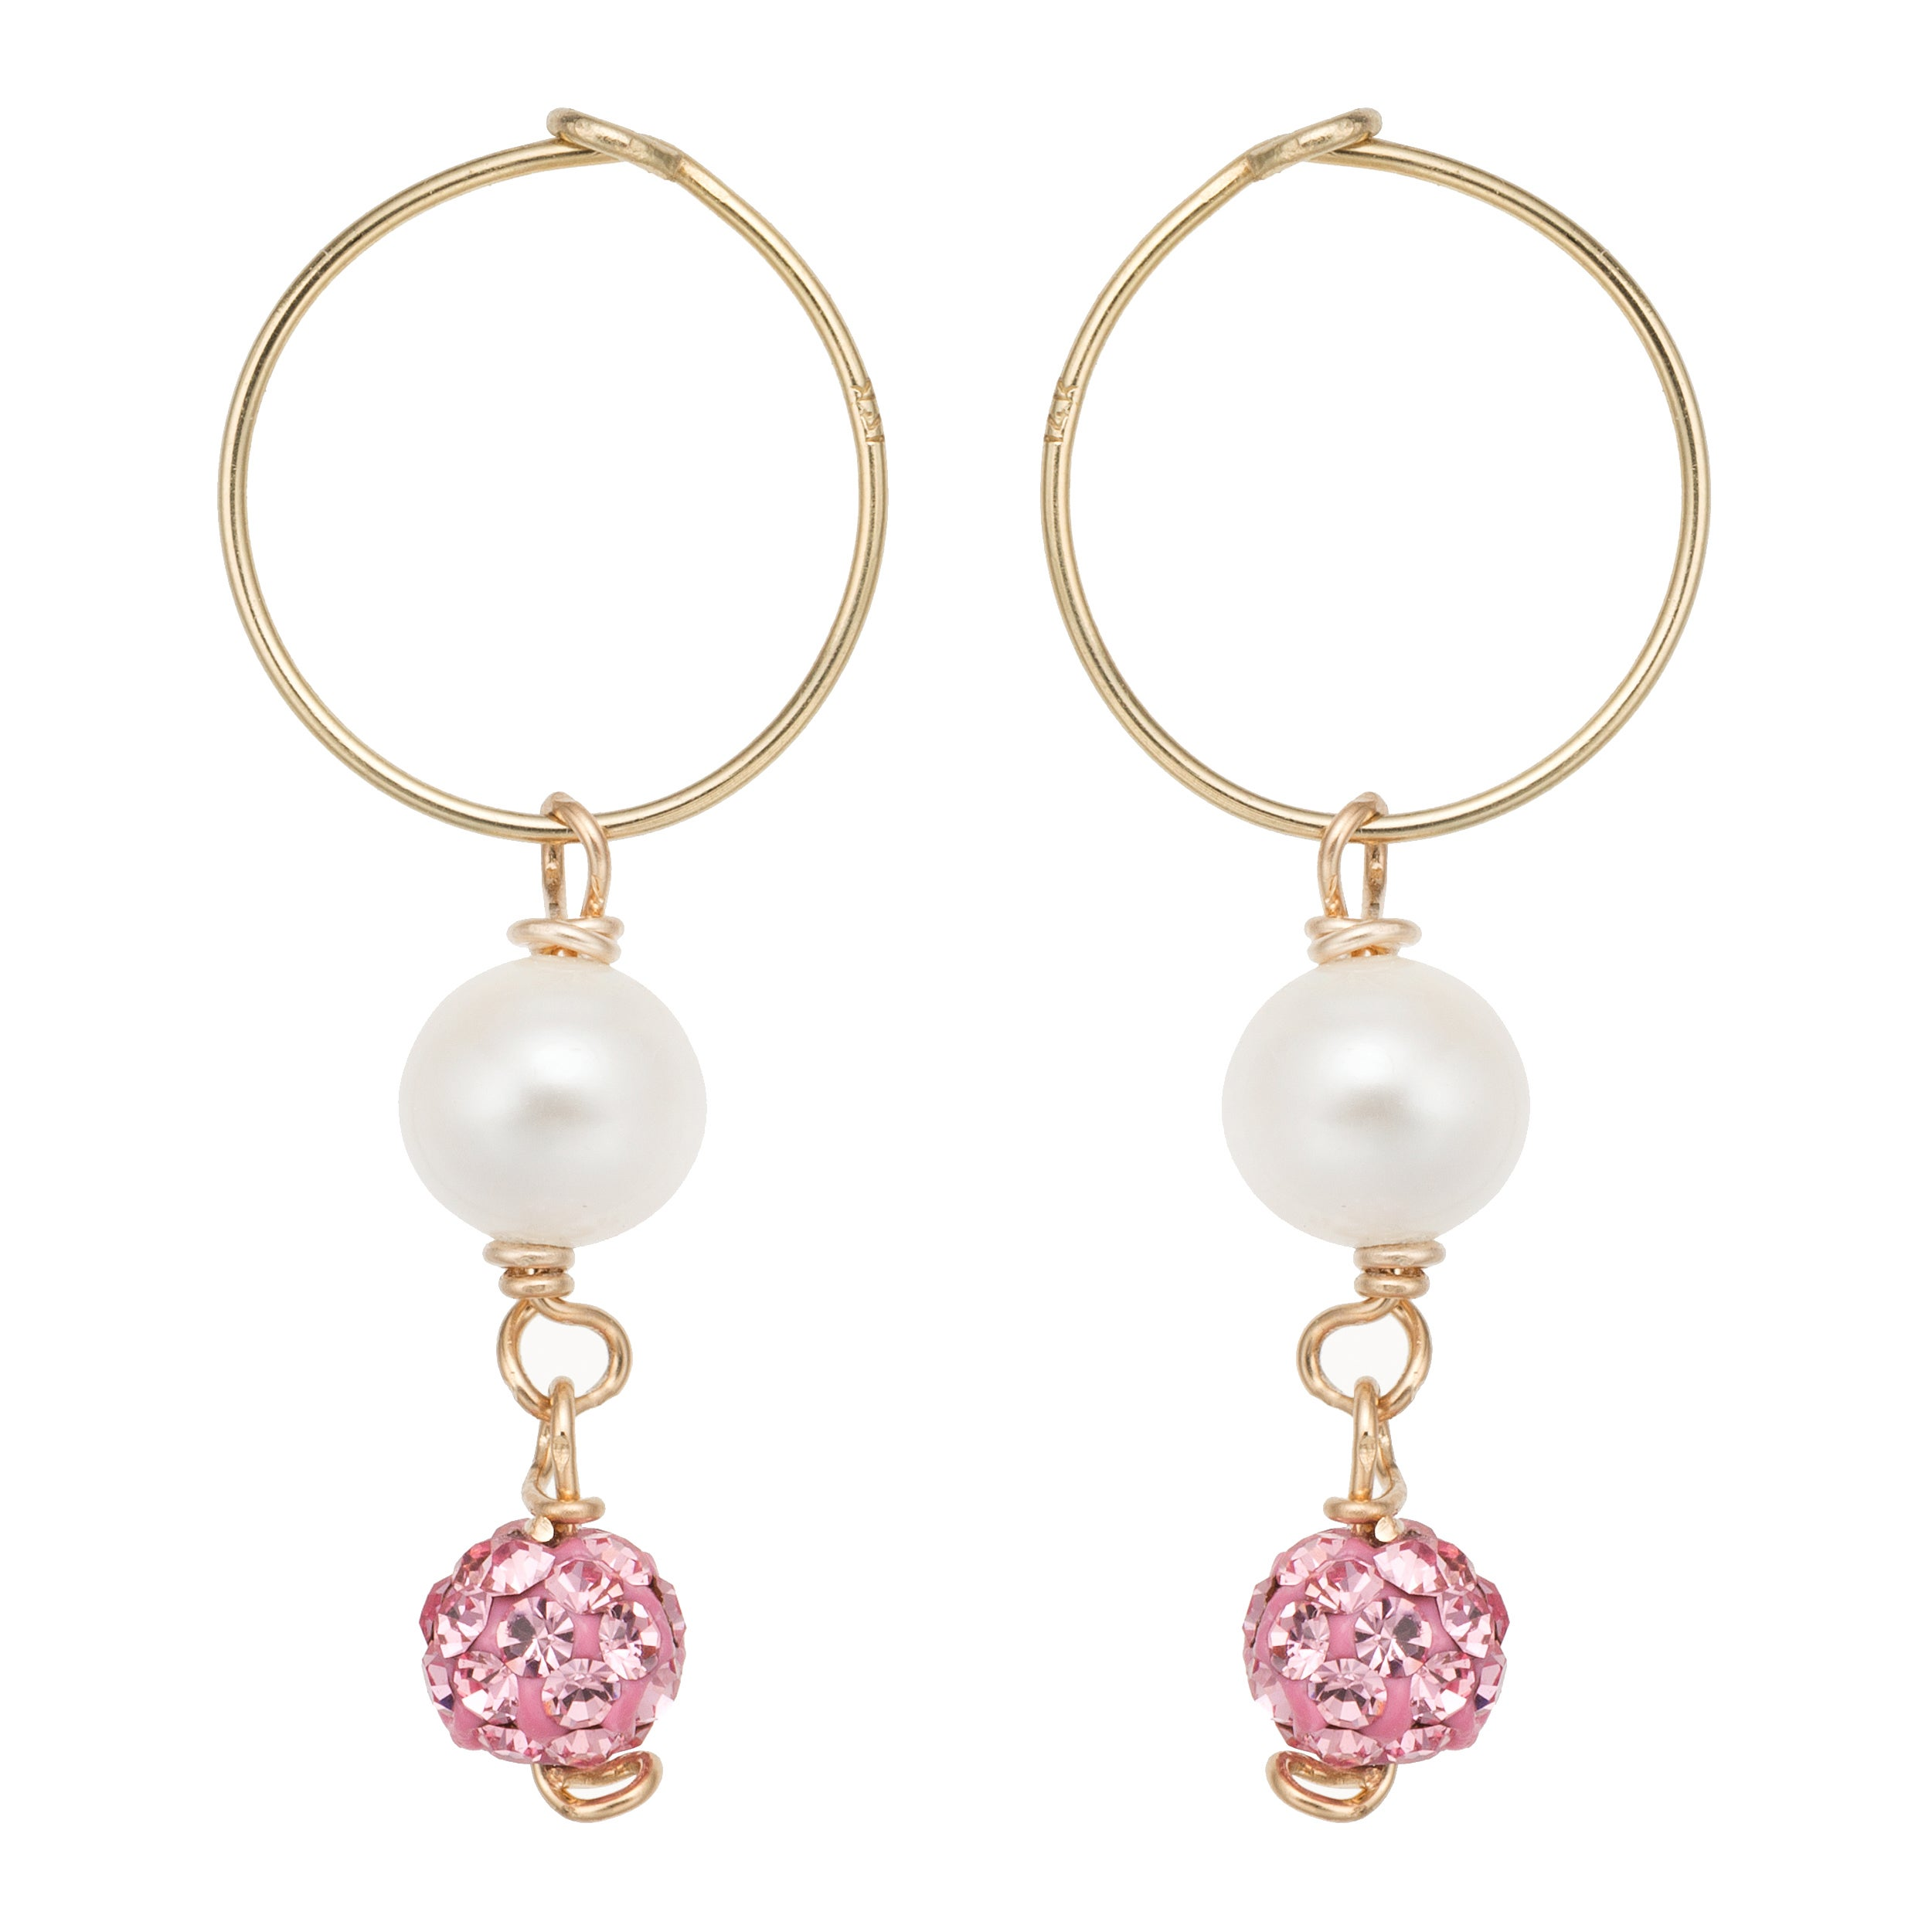 Pearlyta 14k Gold Freshwater Pearl And Pink Crystal Hoop Earrings With Gift Box 5 6 Mm On Free Shipping Orders Over 45